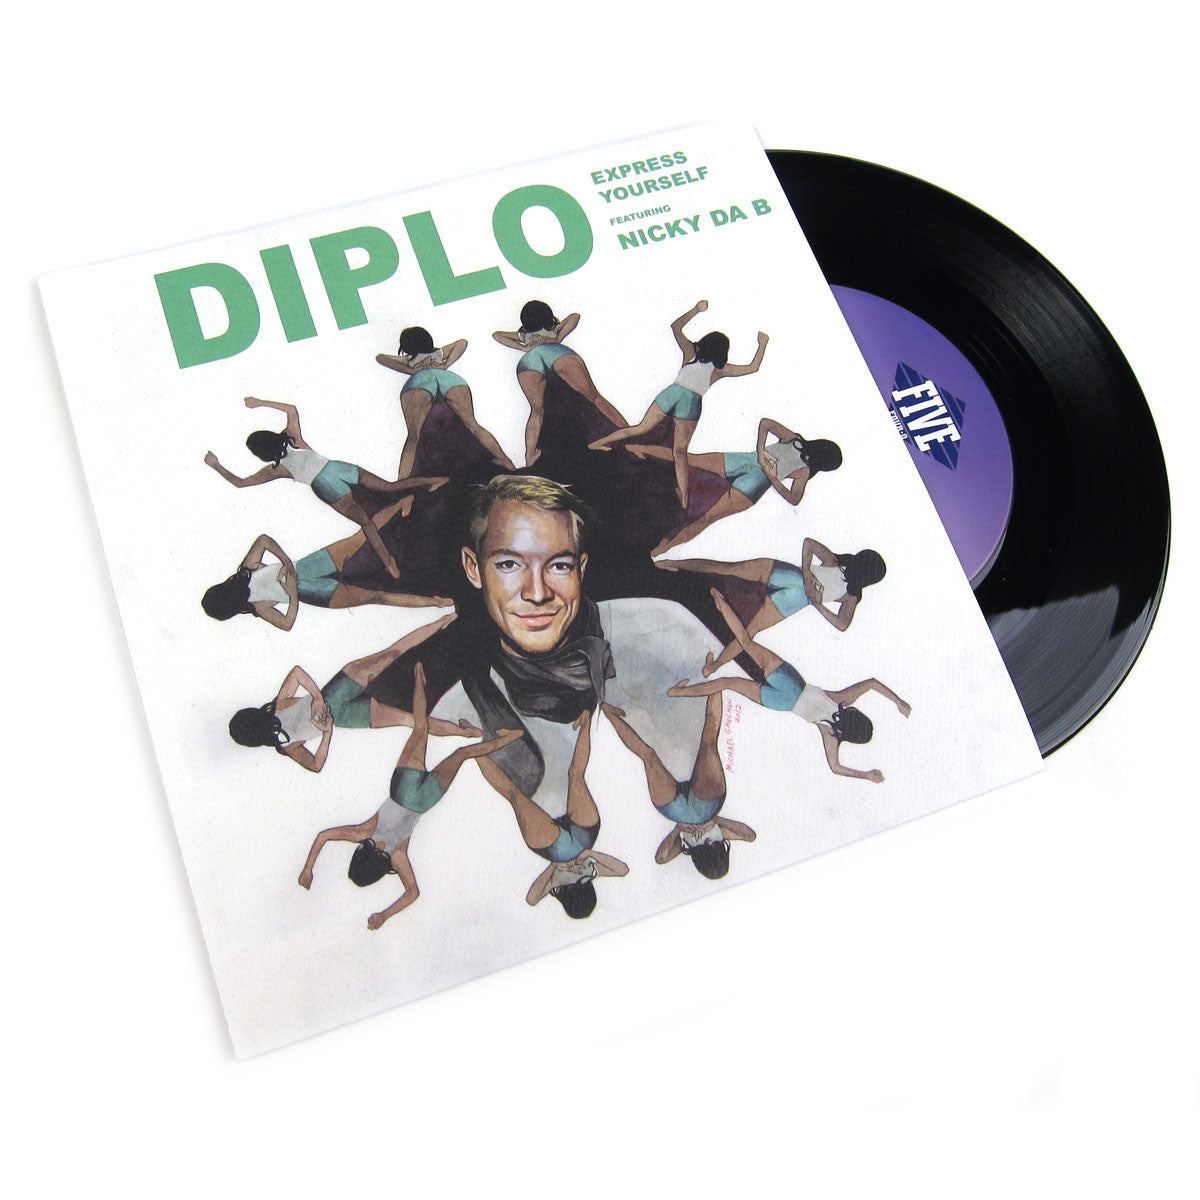 Diplo: Express Yourself (feat. Nicky Da B) Vinyl 7""